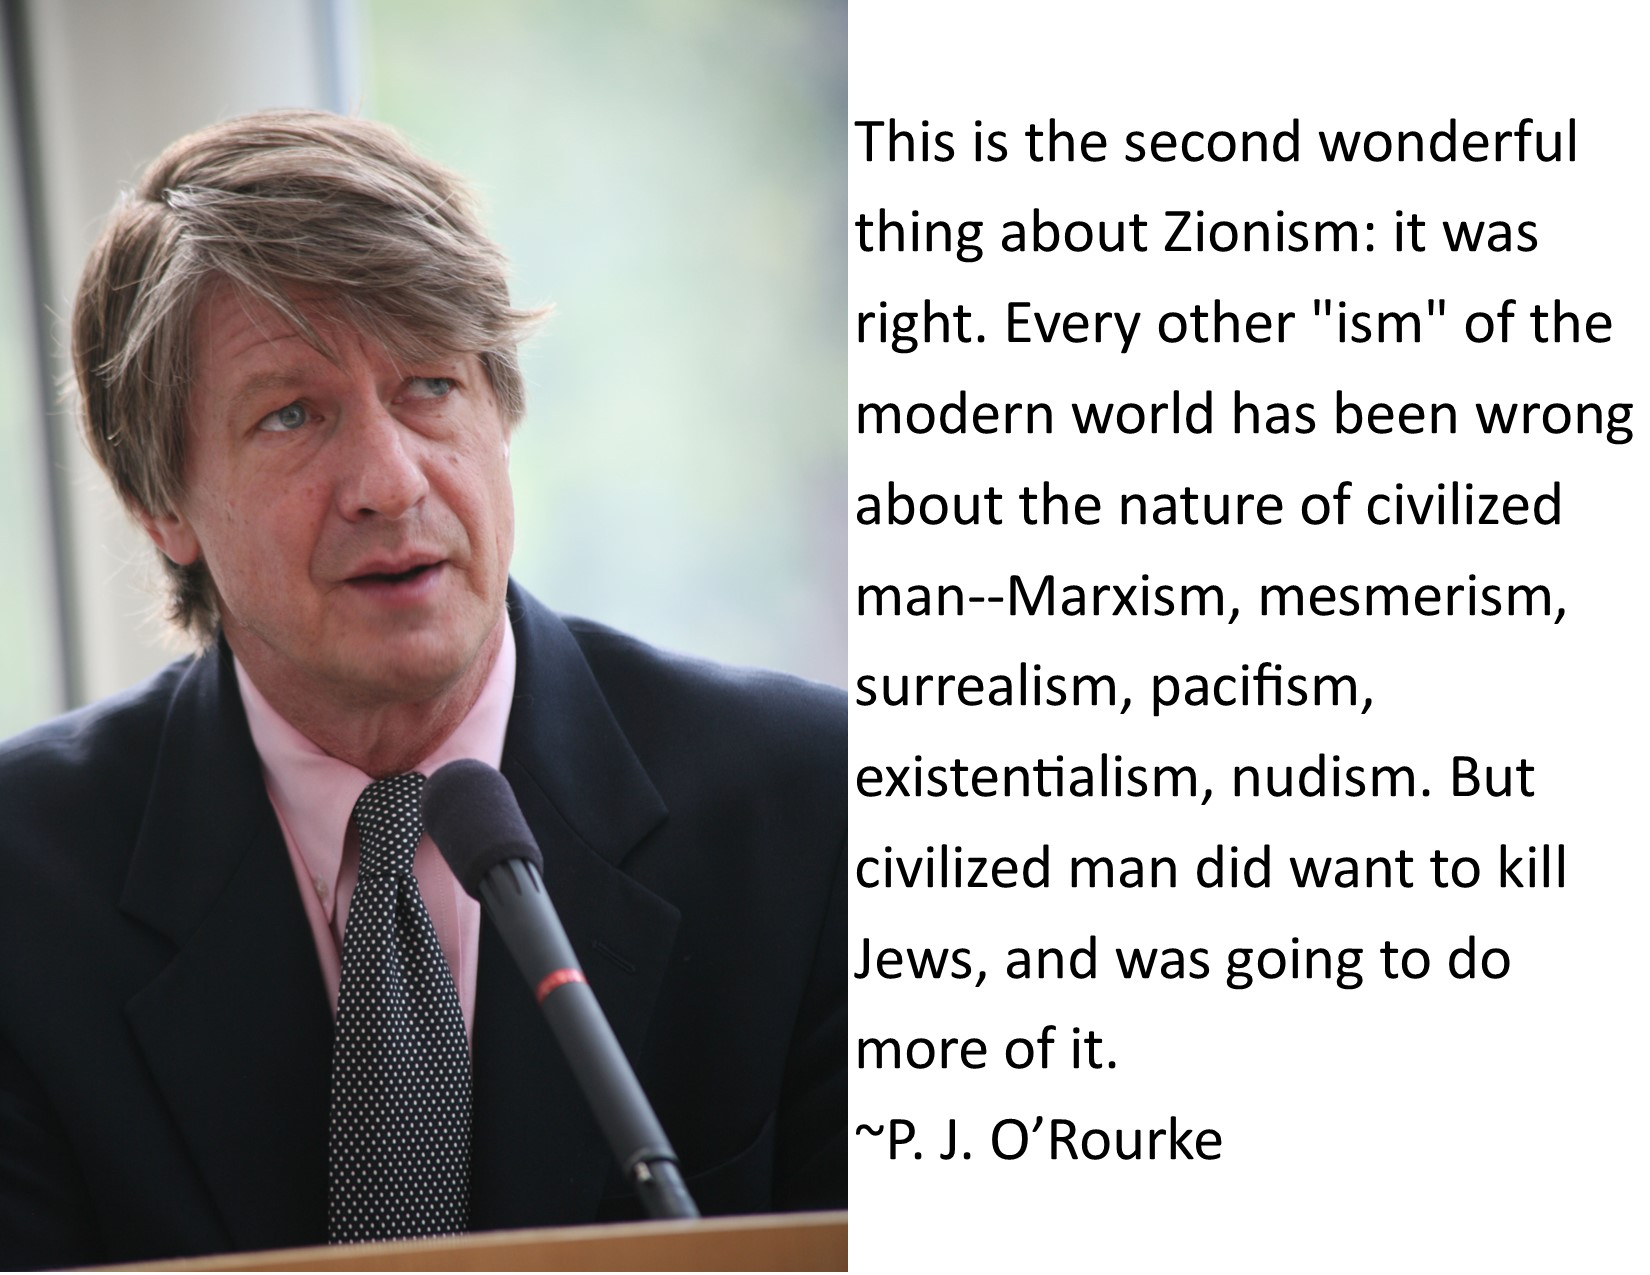 """""""This is the second wonderful thing about Zionism: it was right."""" ~P. J. O'Rourke [1650 x 1275] [OC]"""